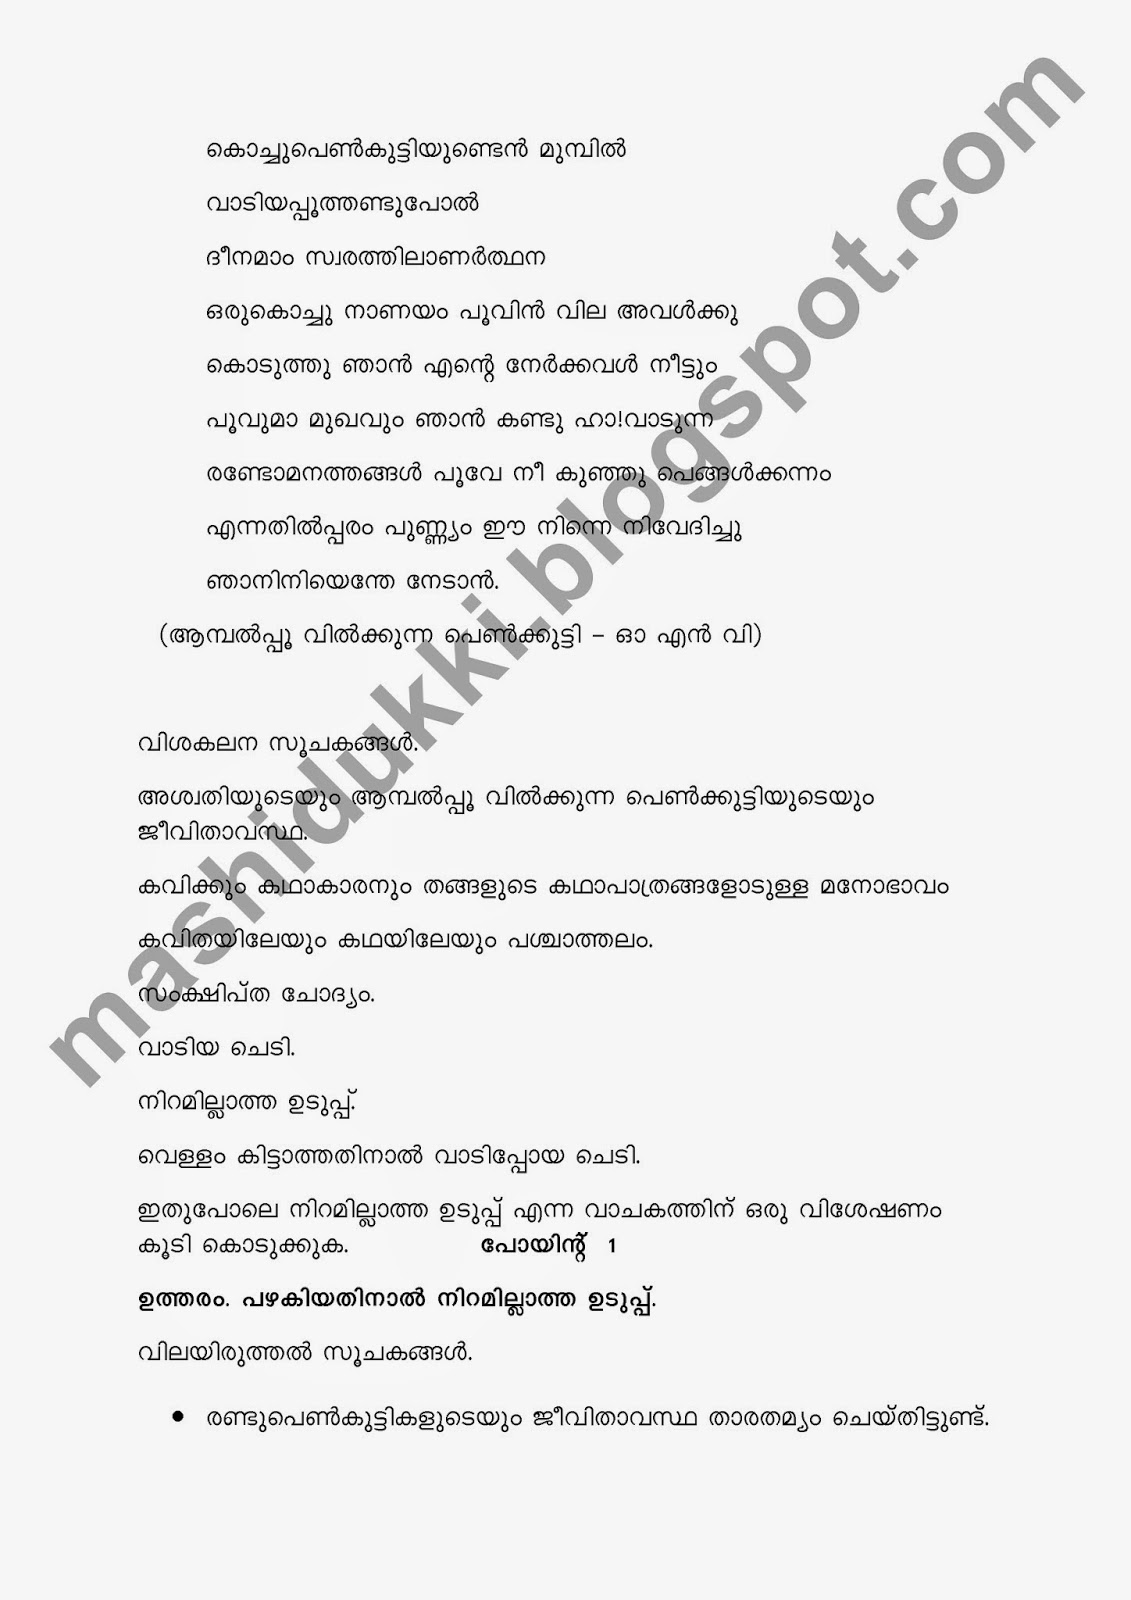 essay on onam in malayalam Onam (malayalam: ഓണം) ona pookalam onam (malayalam: ഓണം) which is also known as vamana jayanthi, [3]is a hindu festival and the state festival of kerala celebrated by the people of kerala, india[4] the festival commemorates and no one was false in speech either measures and weights were.